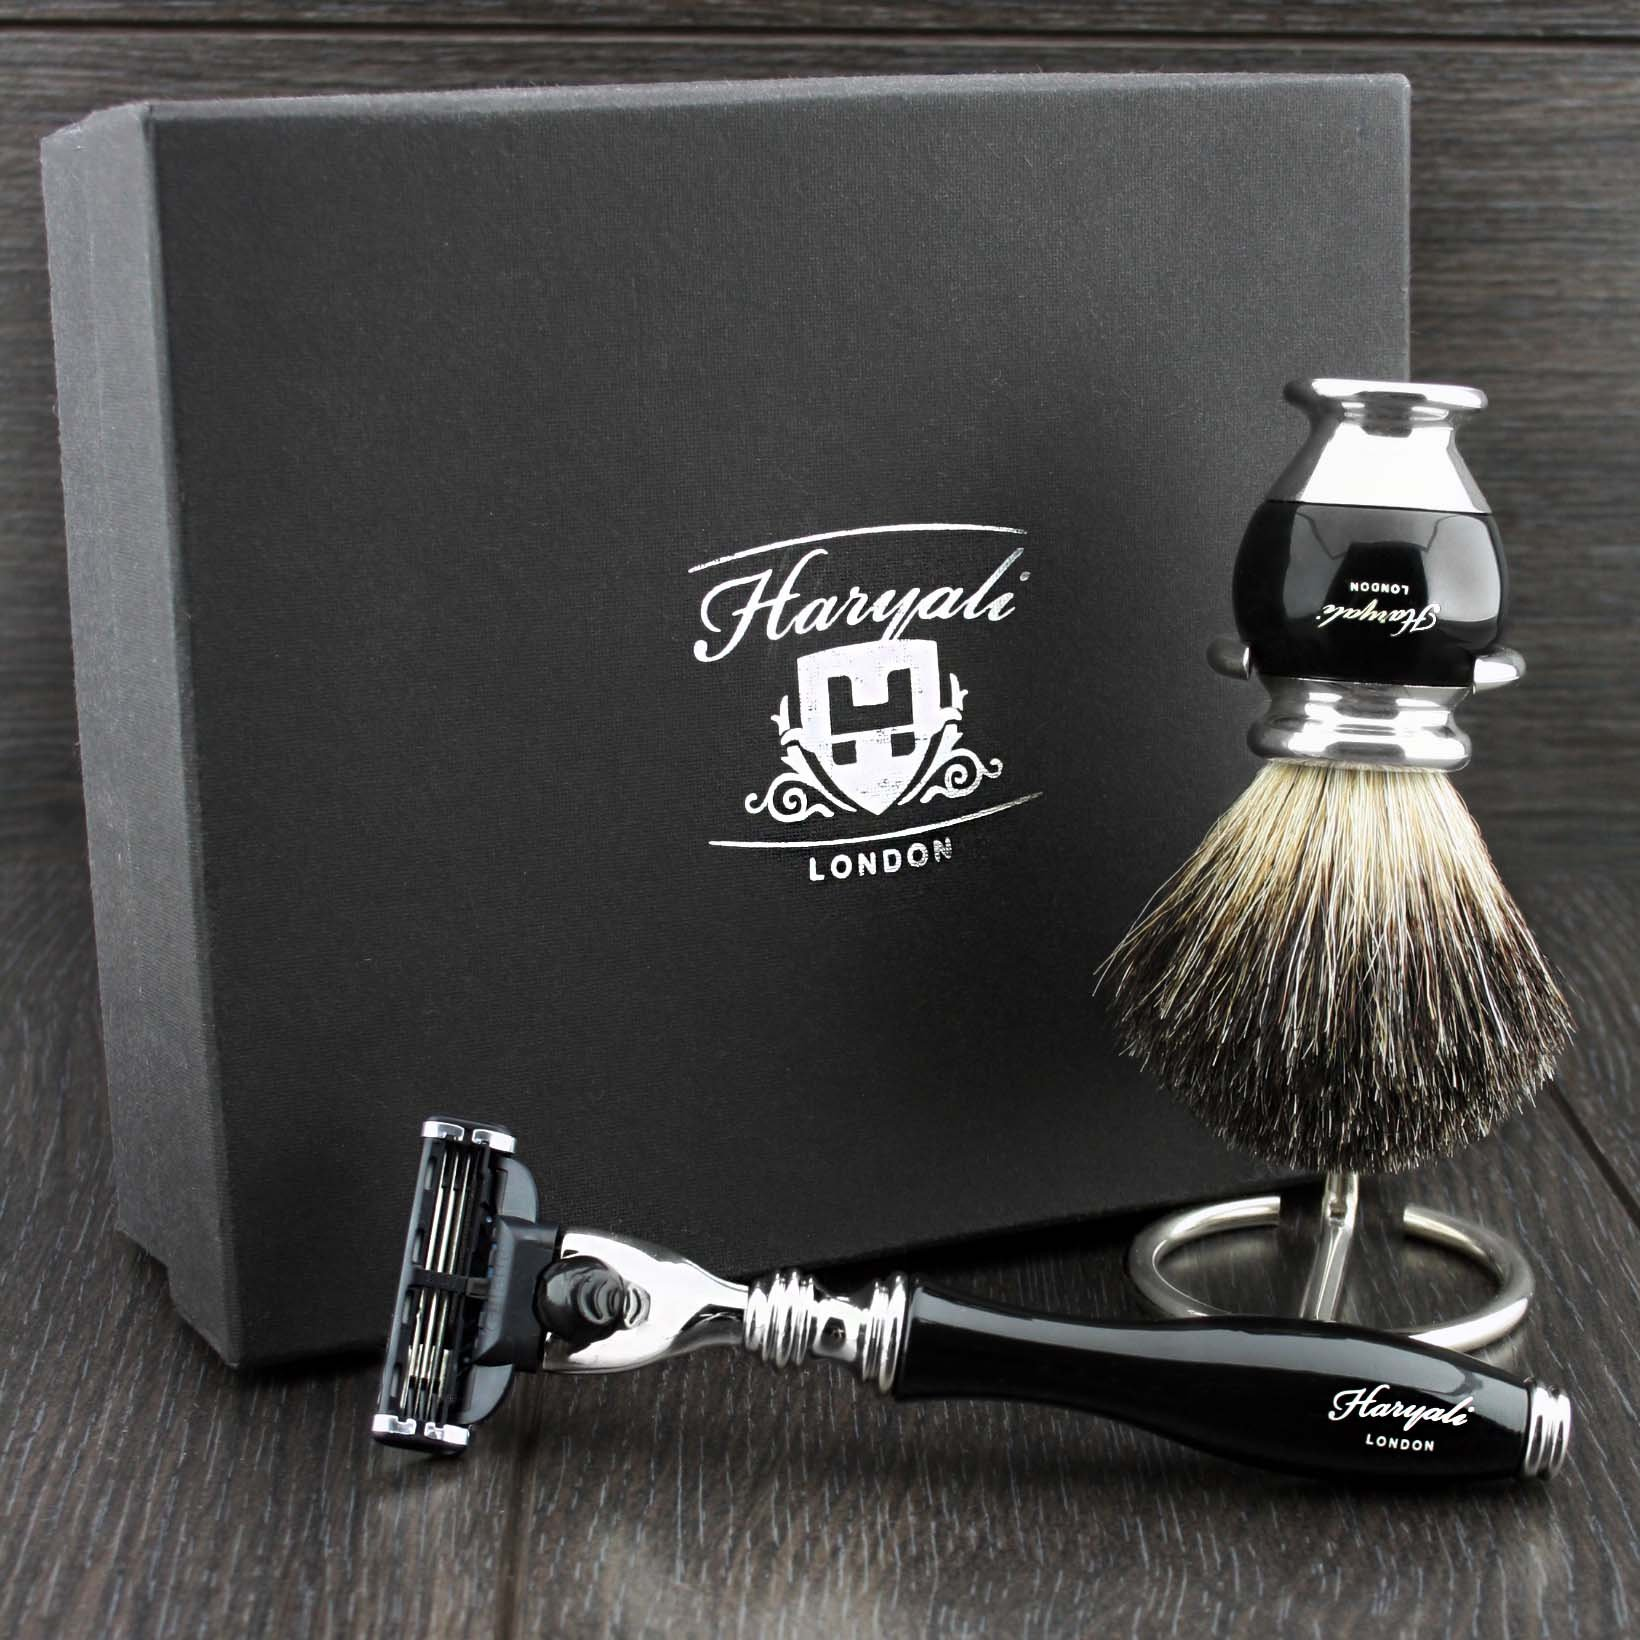 Shaving Gift Set with Gillette Mach 3 Hand Assembled razor , Classic Black Badger Brush and Stands, Great Gift Idea for (New Beginner), (Grand Father), (Father), (Husband) or (Boyfriend). by Haryali L by Haryali London